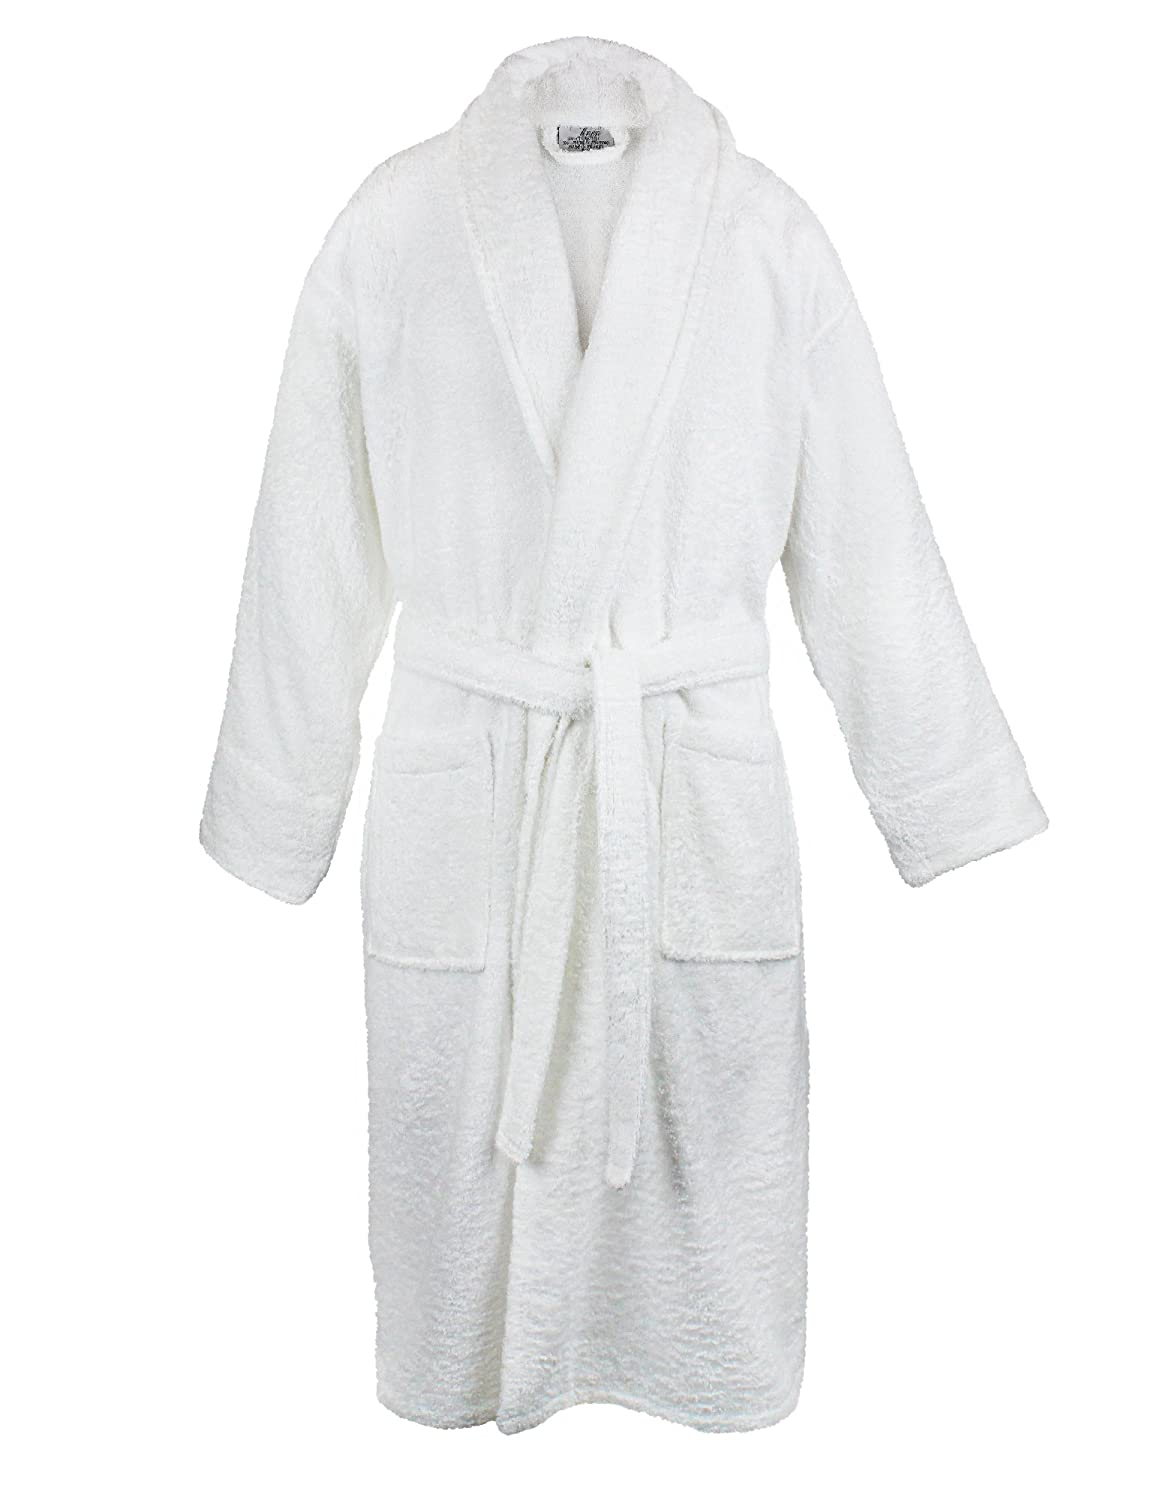 Bare Cotton Men Terry Shawl Robe, Small/Medium, Royal Blue 4000-1003-02